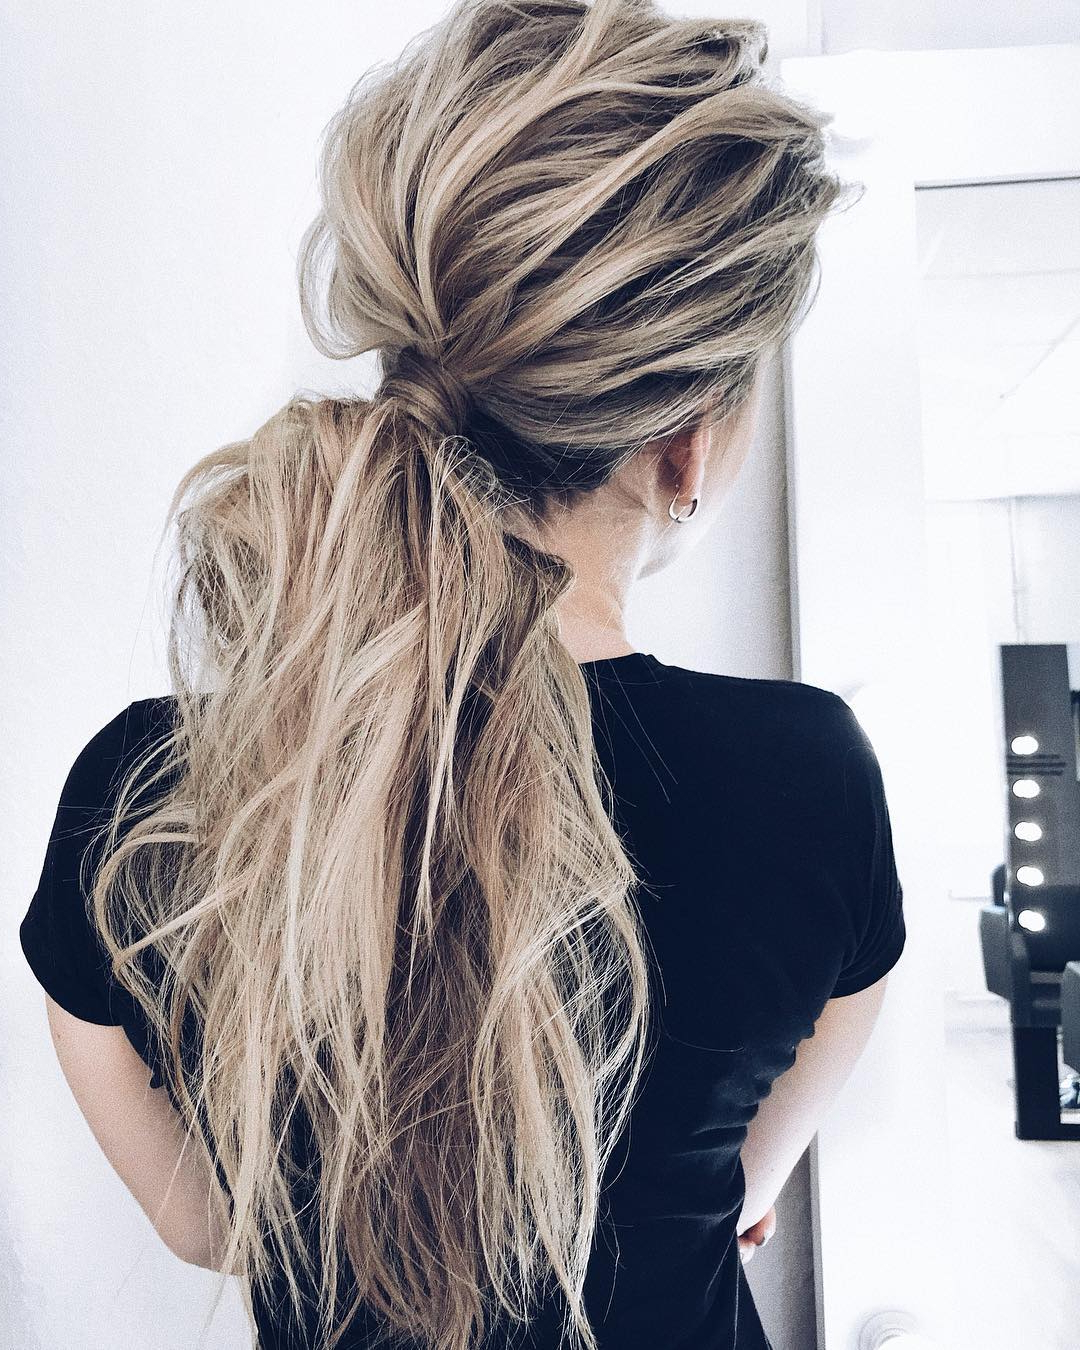 Most Current High Long Ponytail Hairstyles With Hair Wrap Regarding 10 Creative Ponytail Hairstyles For Long Hair, Summer (View 16 of 20)